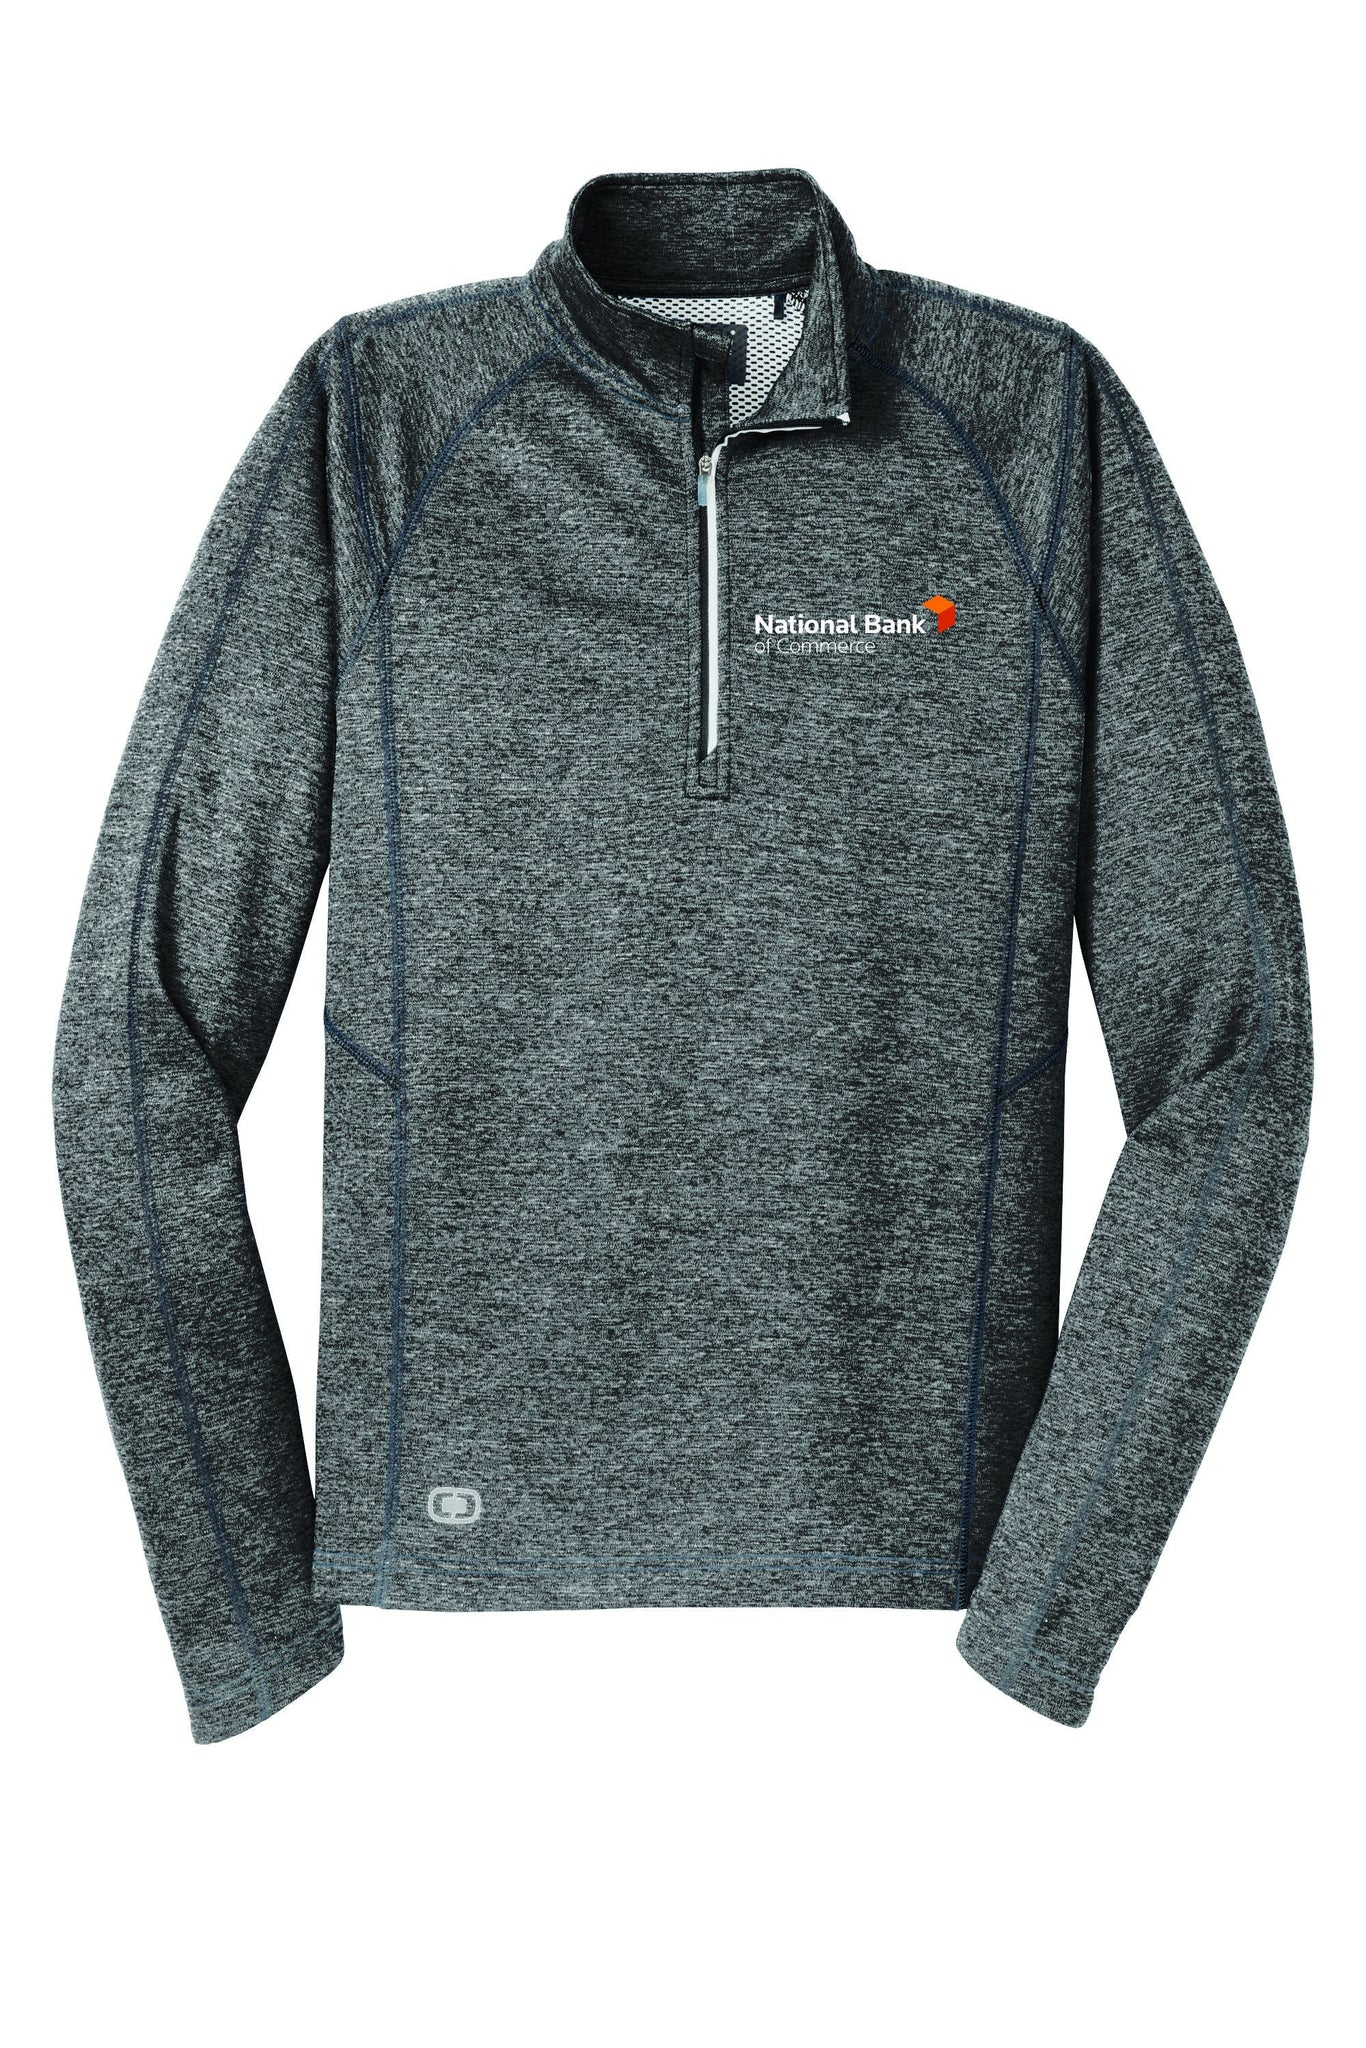 OE500 OGIO®MEN'S ENDURANCE Pursuit 1/4-Zip